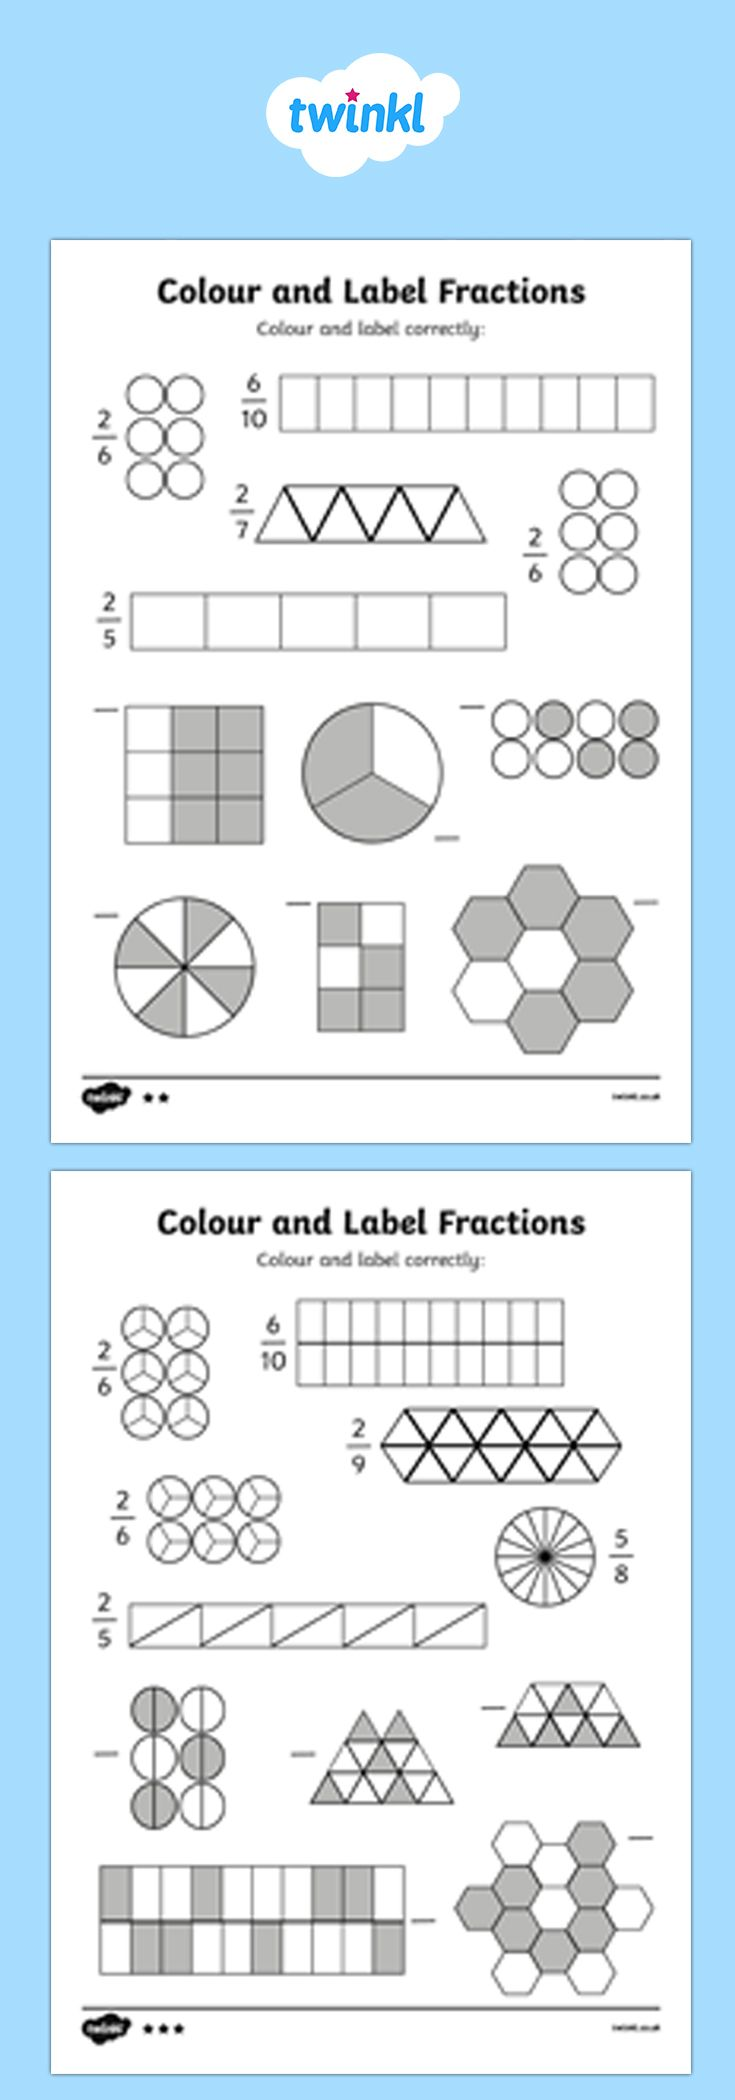 Shading Fractions Worksheet Pack Fractions Worksheets Shading Fractions Fractions Twinkl adding digit numbers with